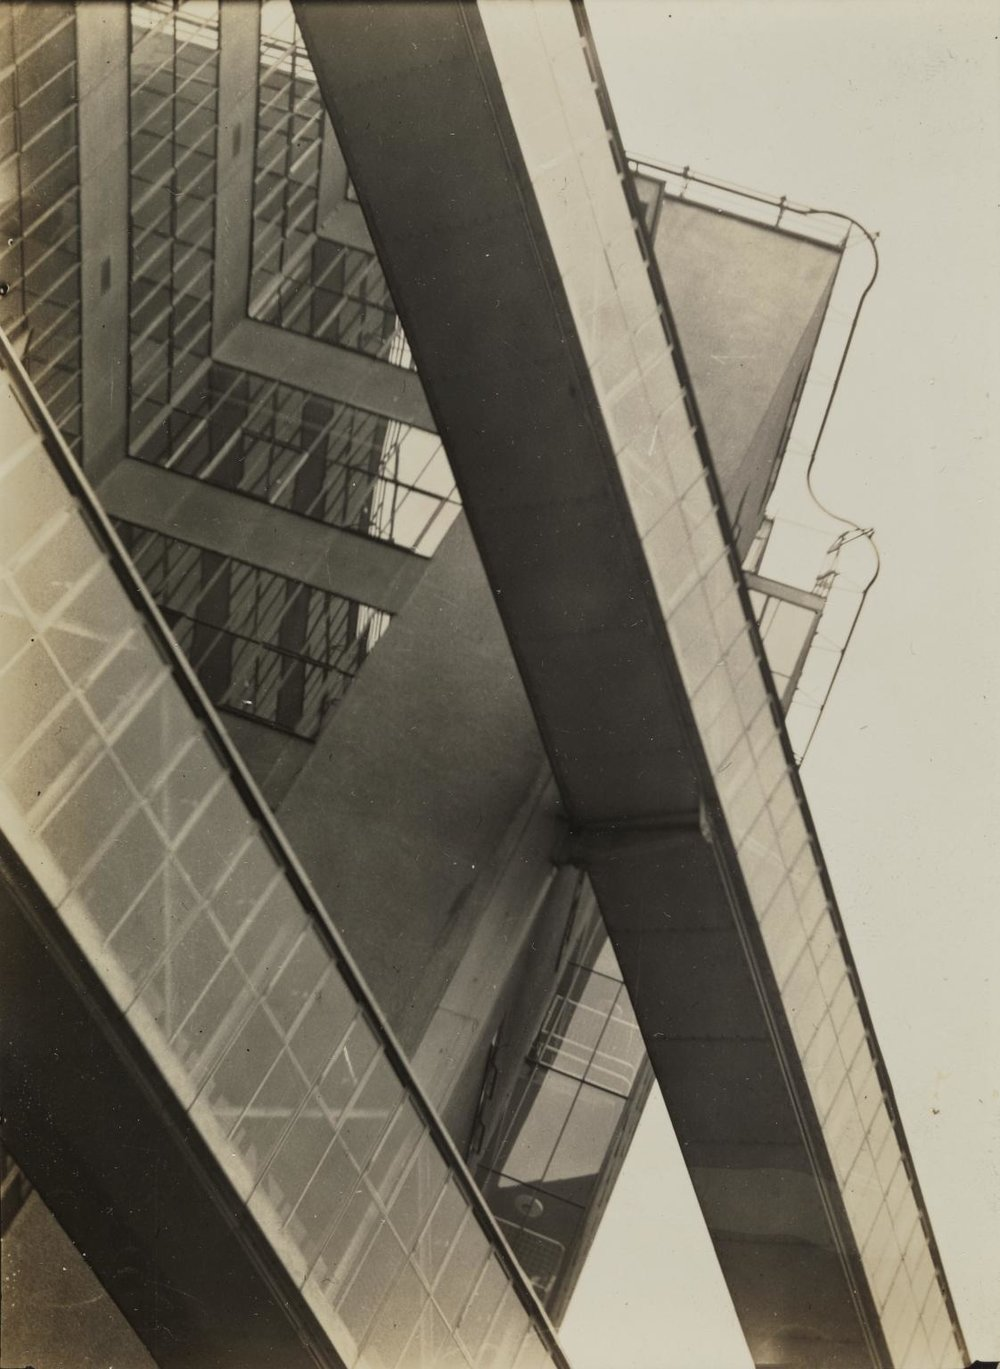 Chernyakhovsk's architecture in 1930, photo by Iwao Yamawaki.